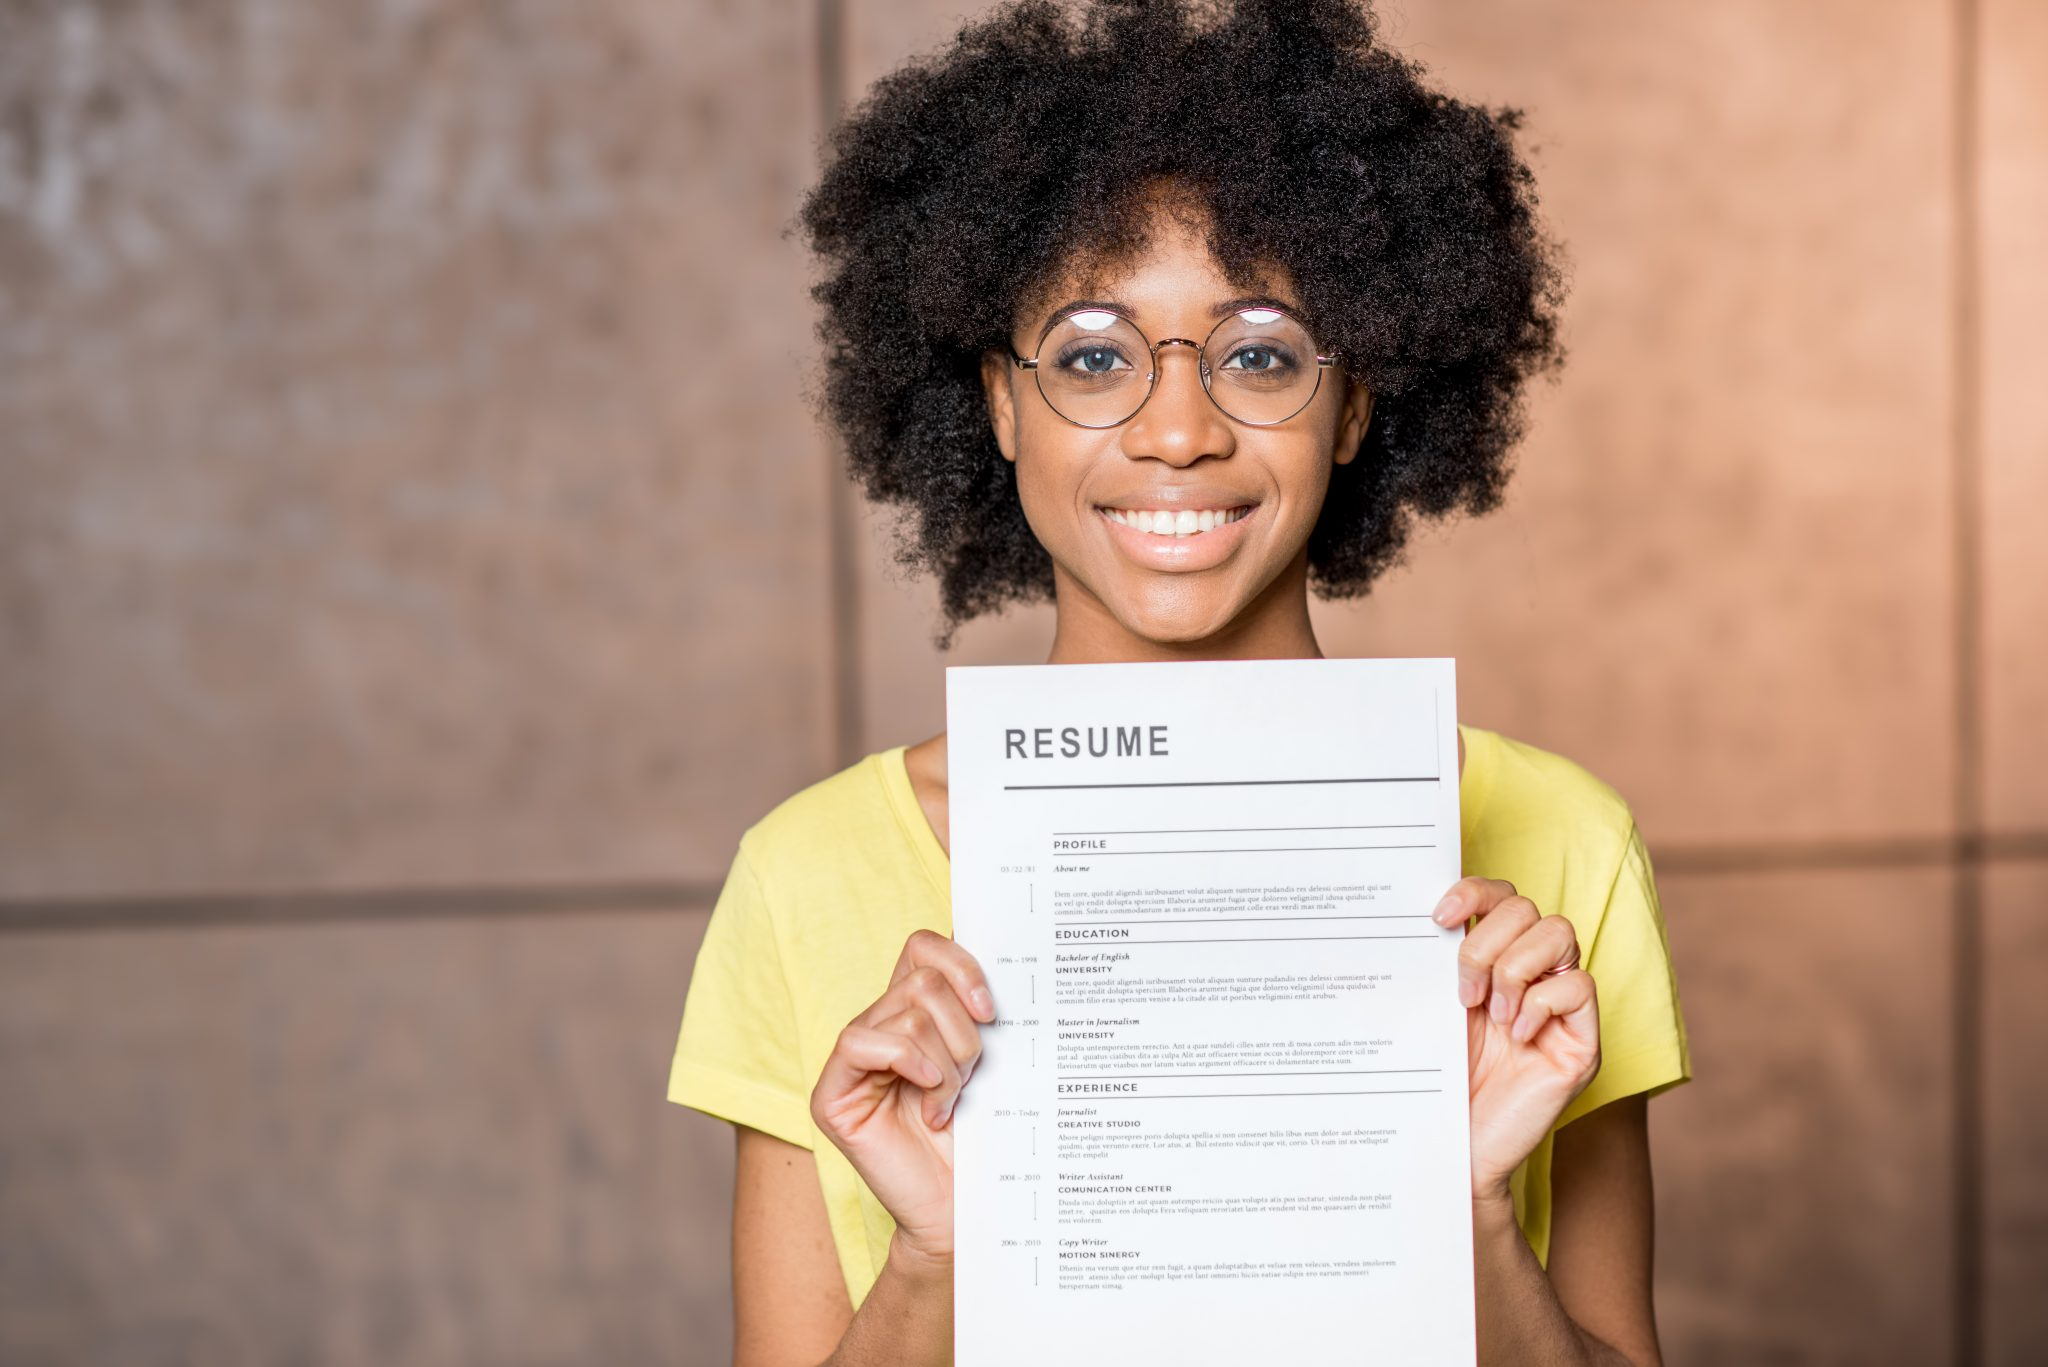 Portrait of a young African woman holding resume document indoors